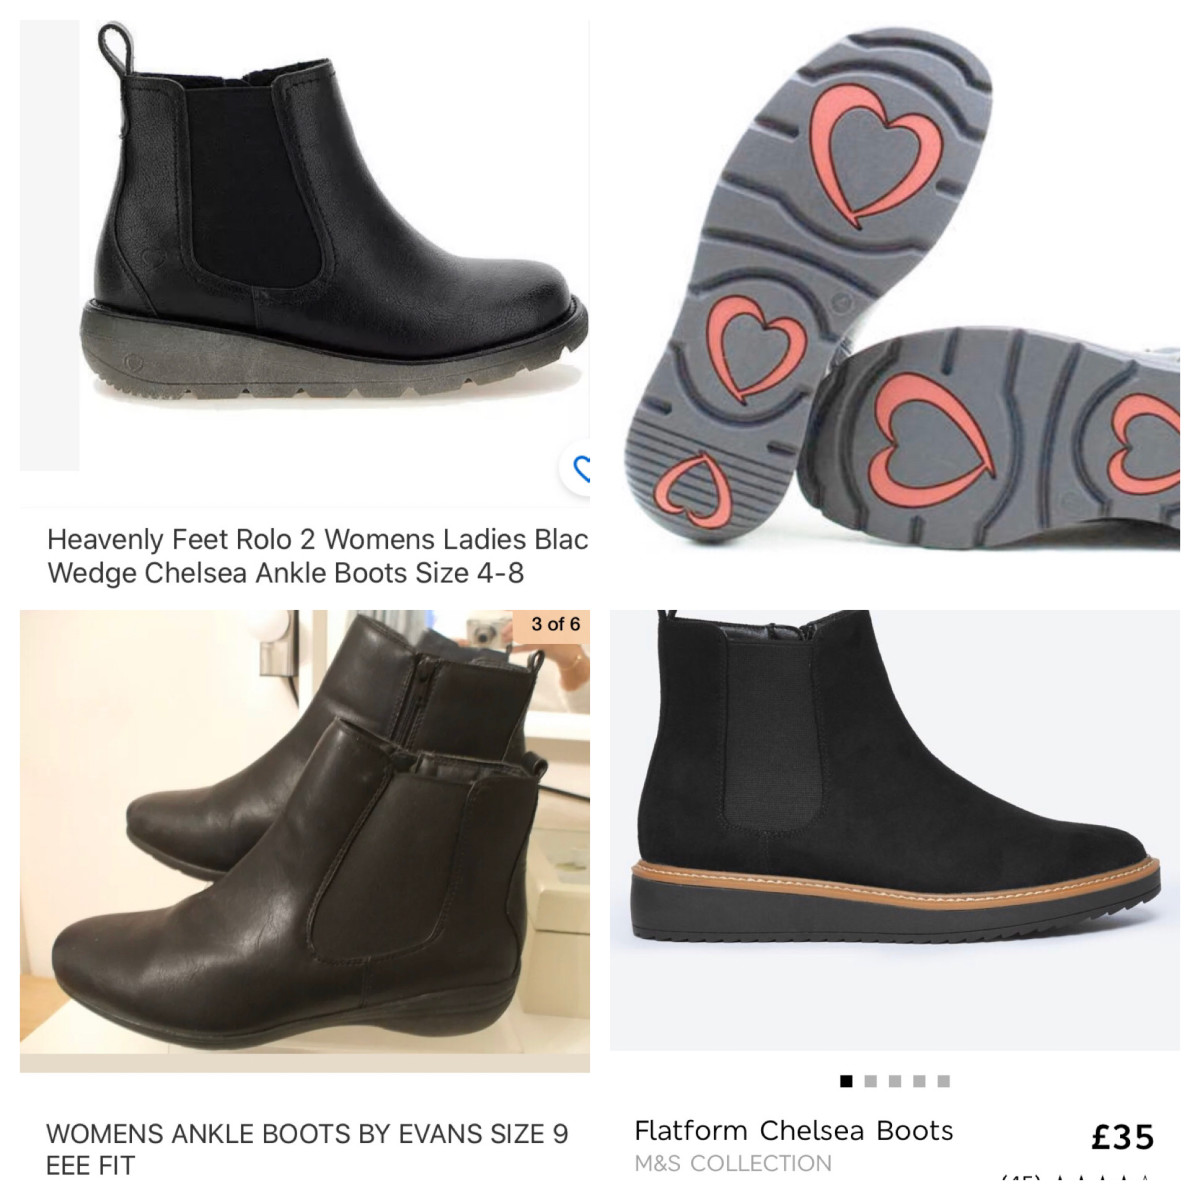 Boots featured in the article, Heavenly feet and Evans wide fit boots that go up to size 9 (US 11, EU 43)